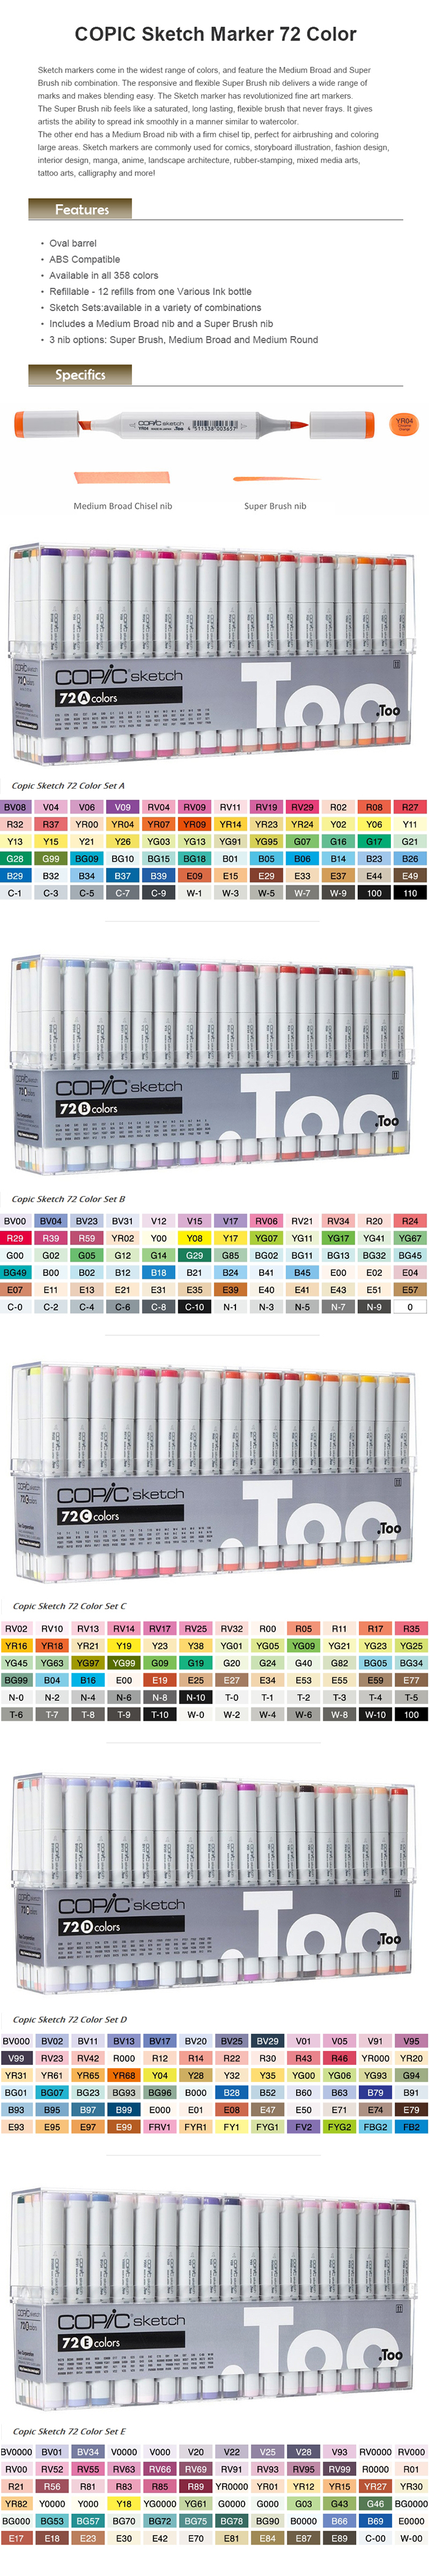 Copic Sketch Marker 72 Color Set C Premium Artist Markers